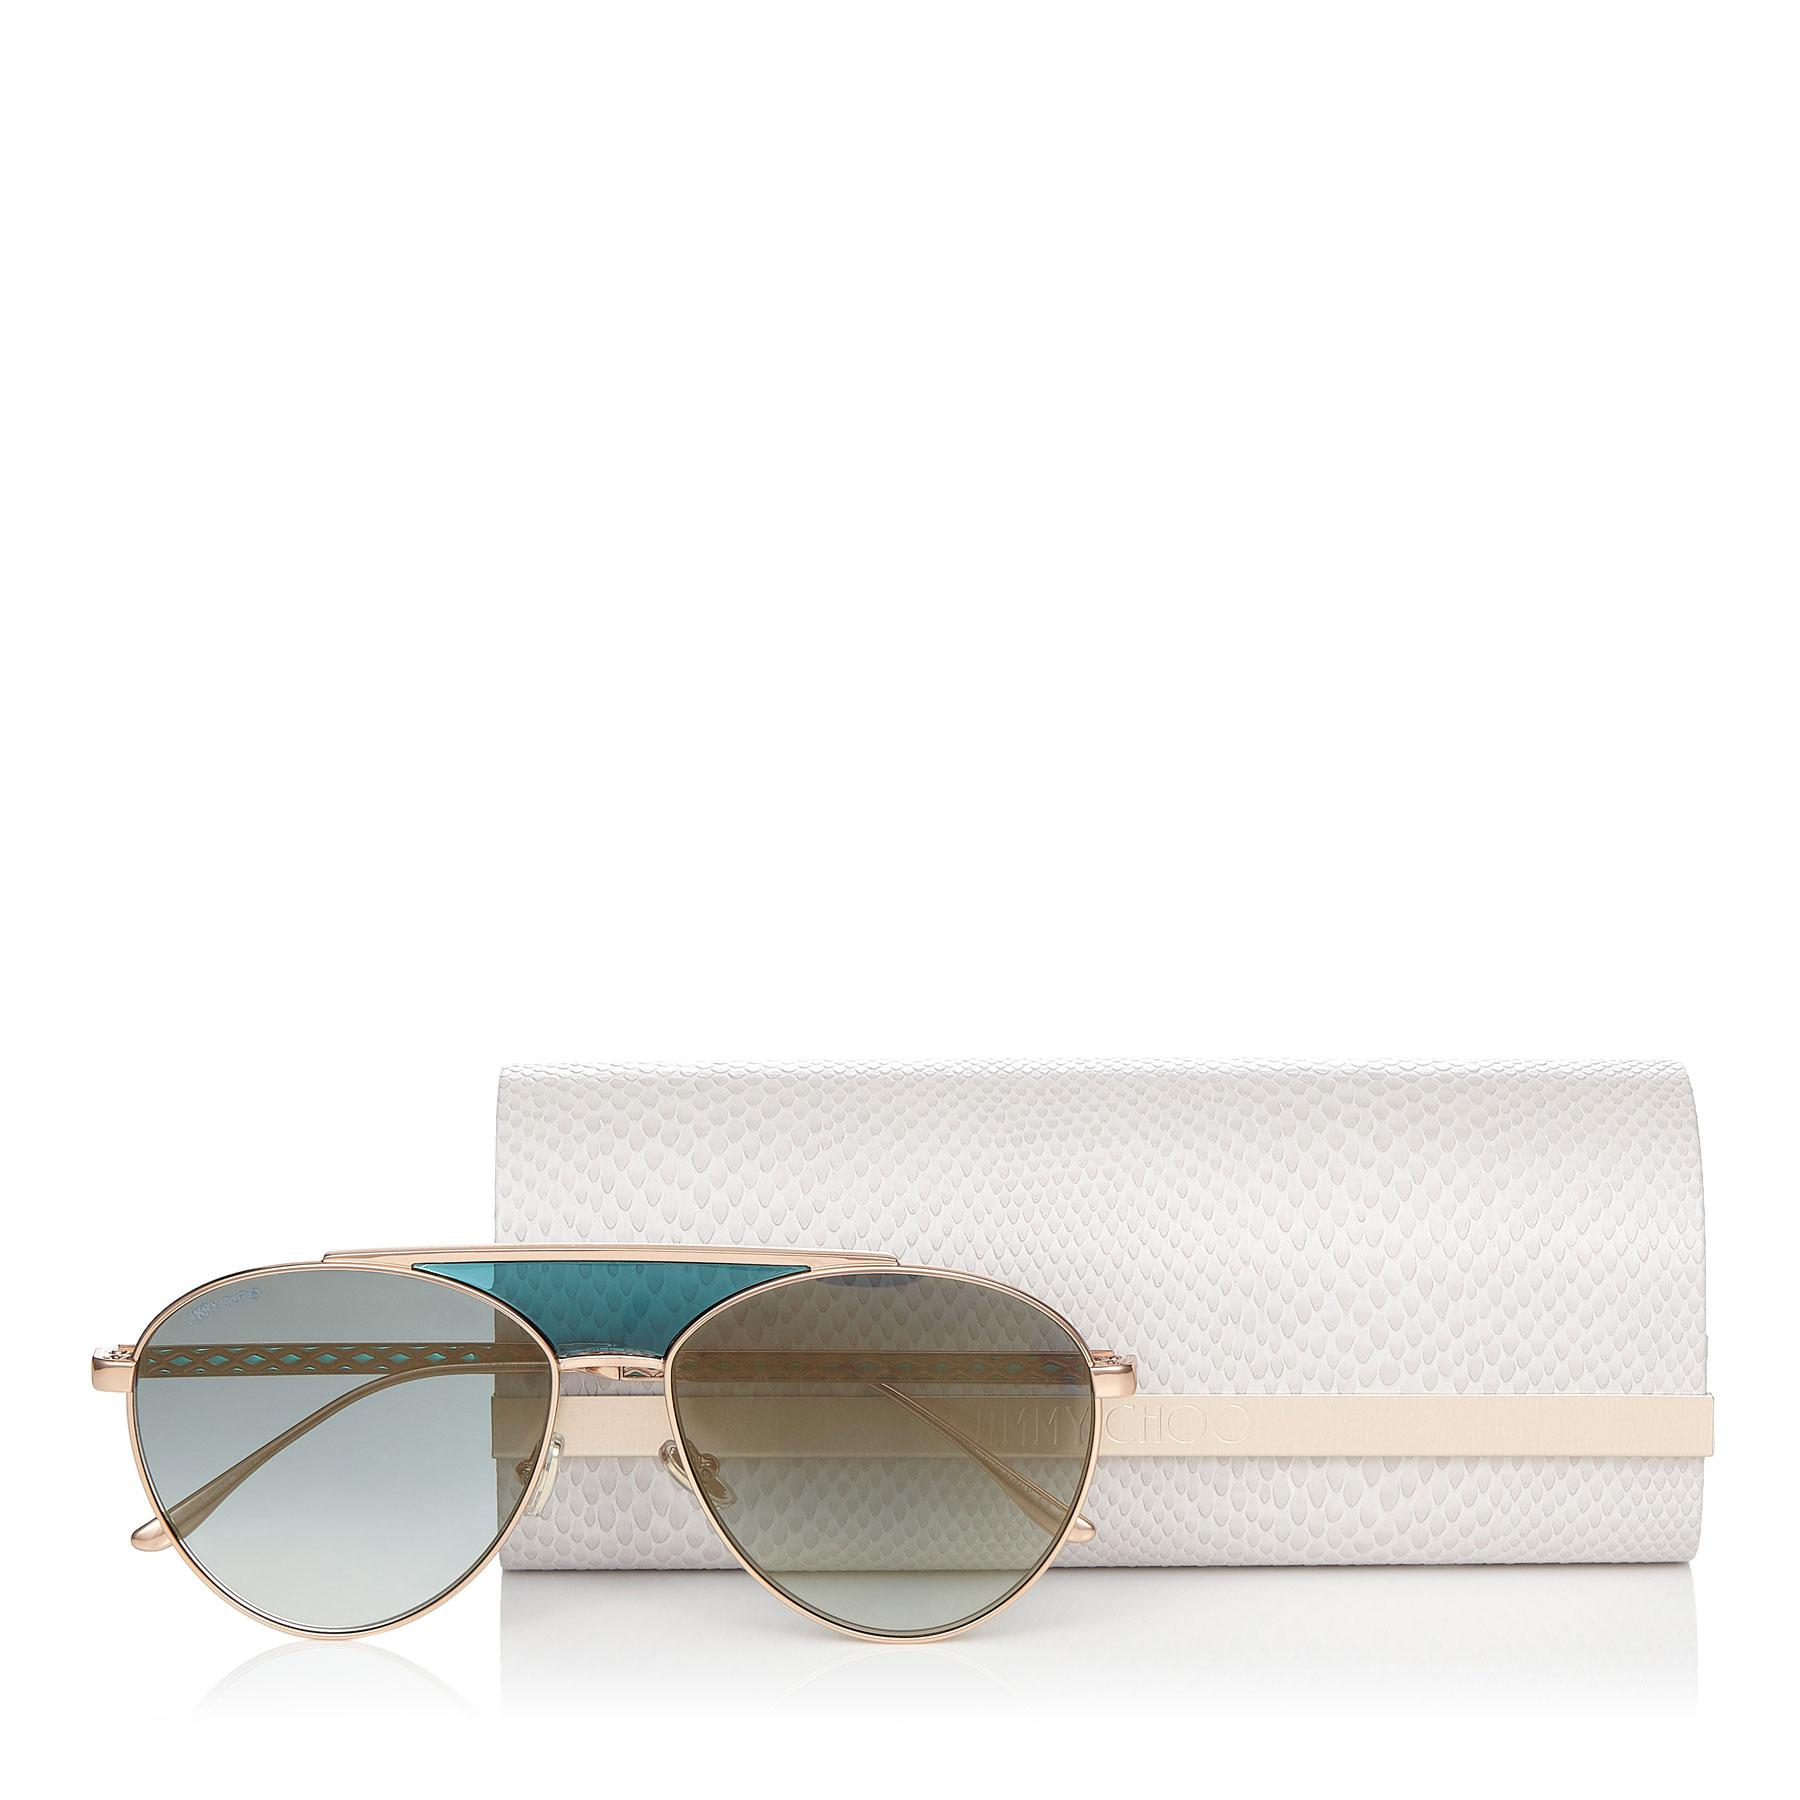 292aad2d3f1d Jimmy Choo - Ave Gold And Green Metal Aviator Sunglasses With Enamel  Detailing On Arms -. View fullscreen